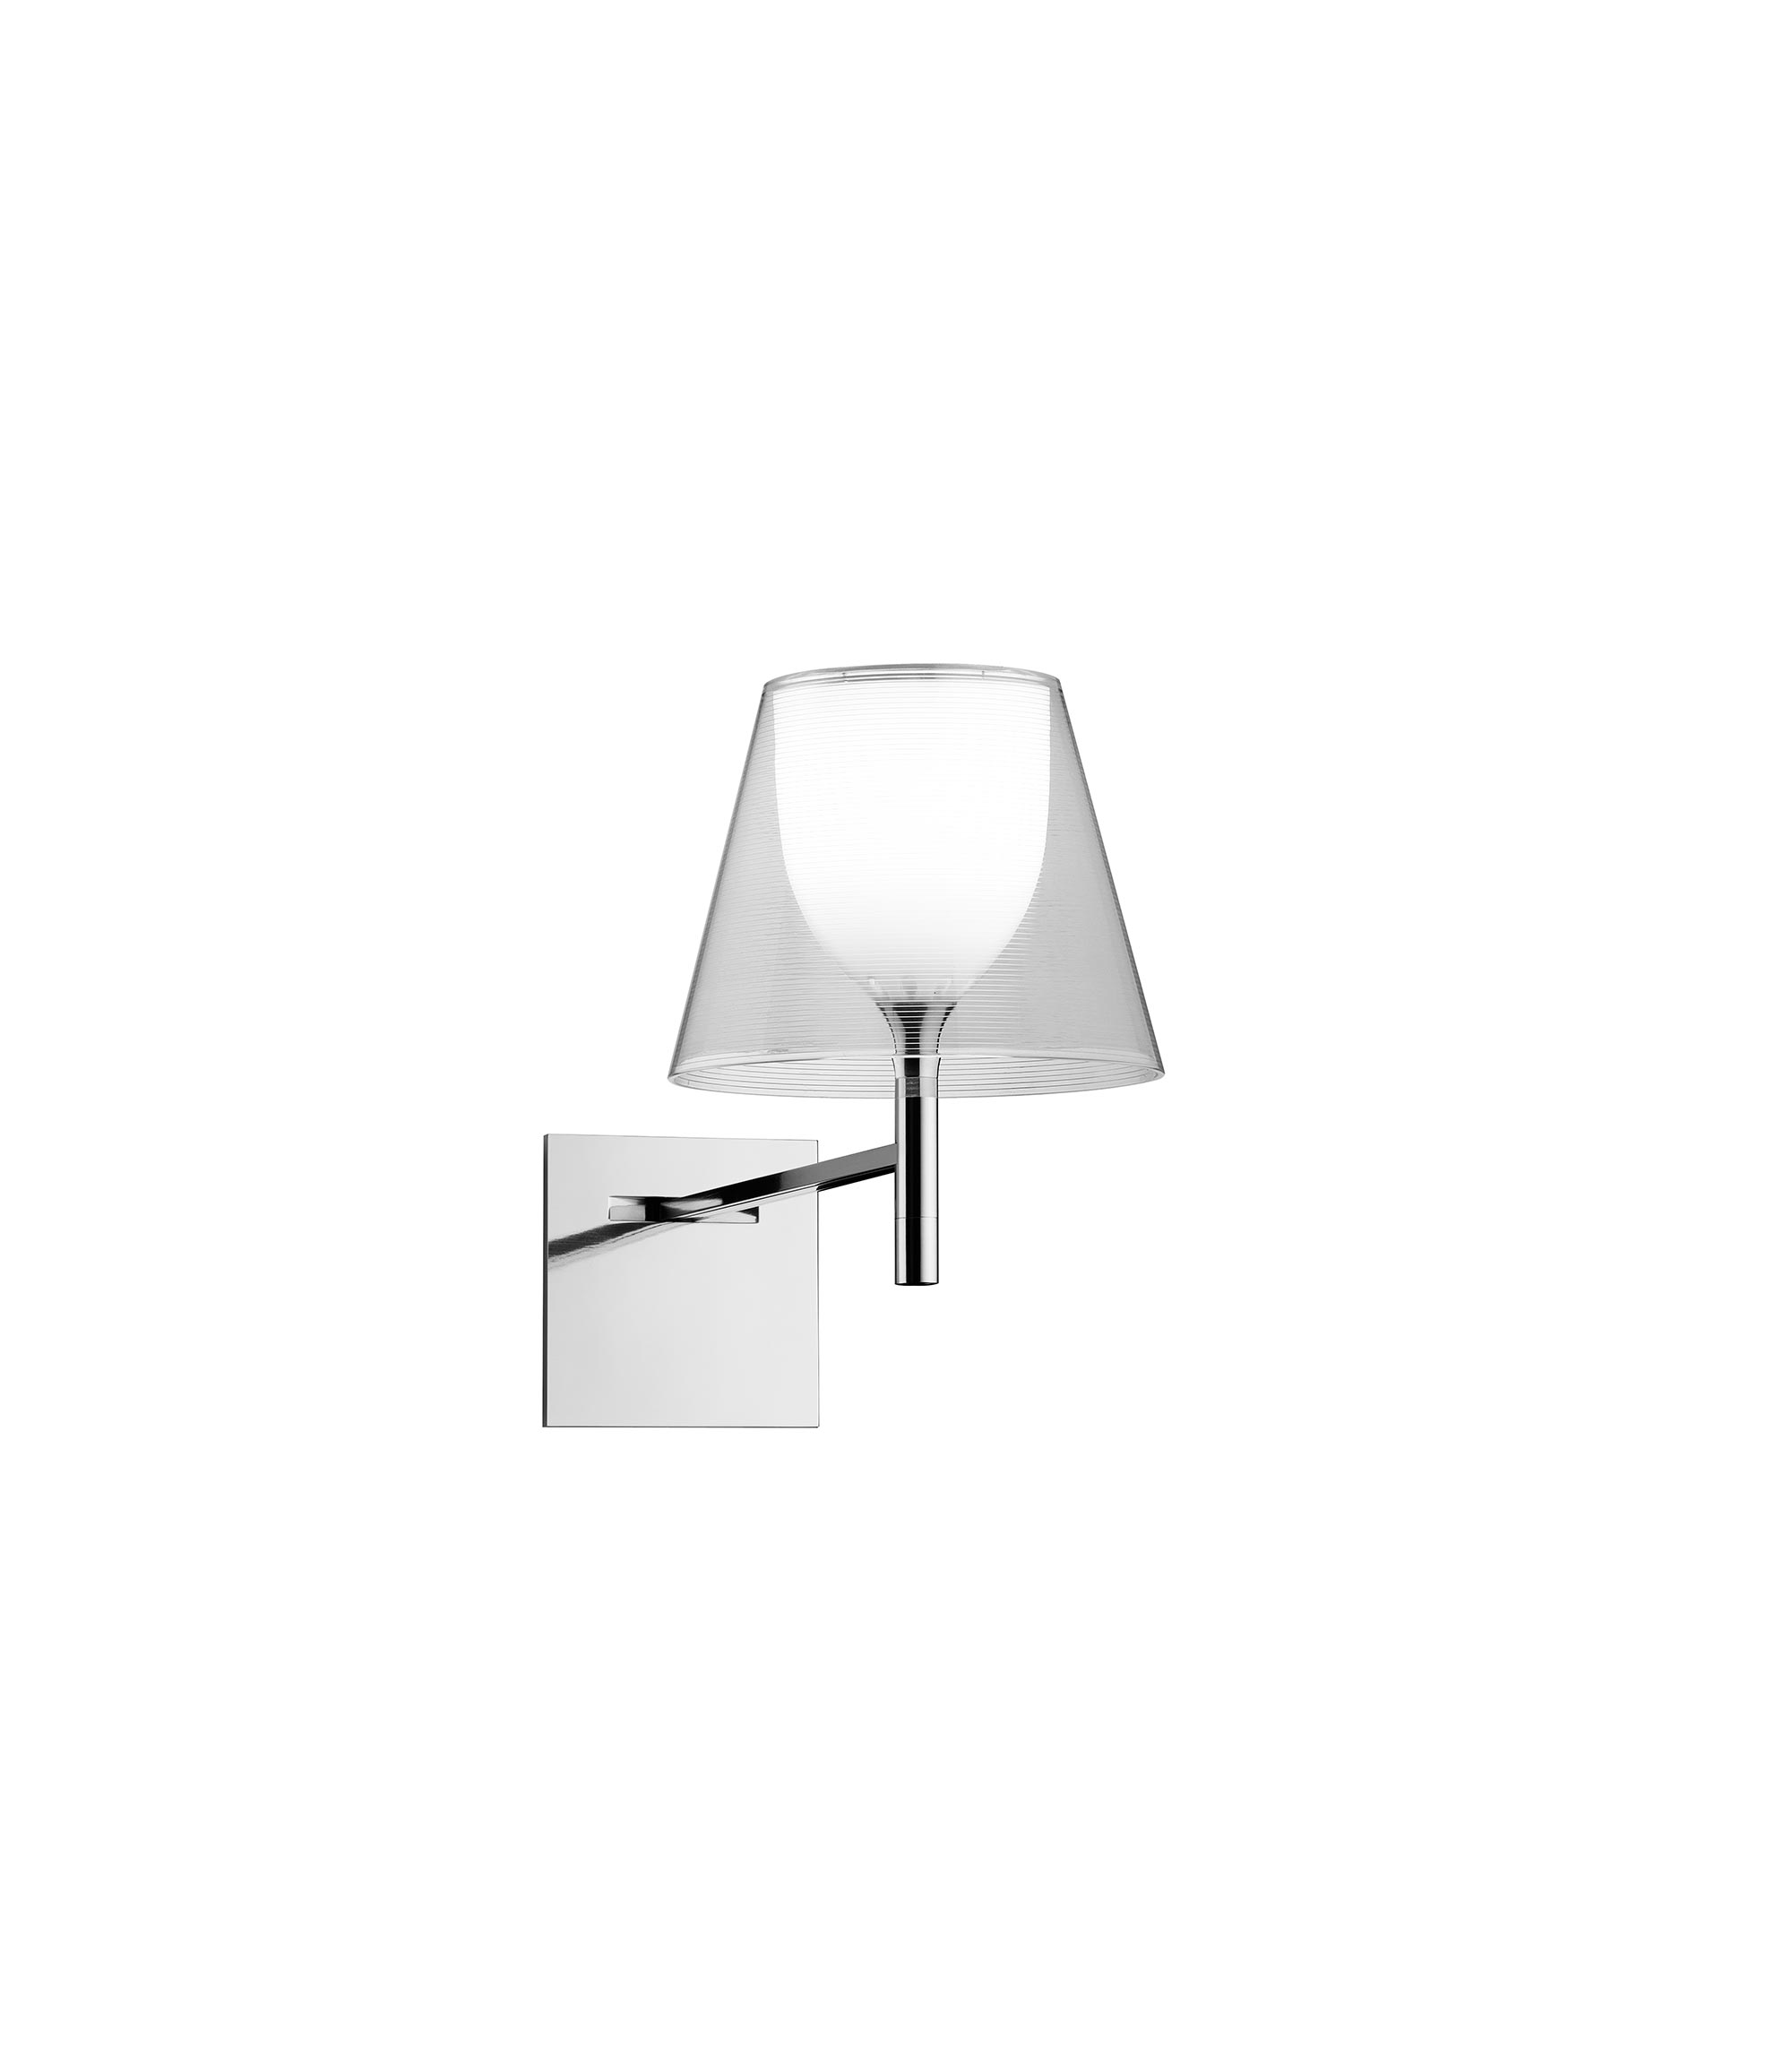 Ktribe wall starck flos F6307000 product still life big